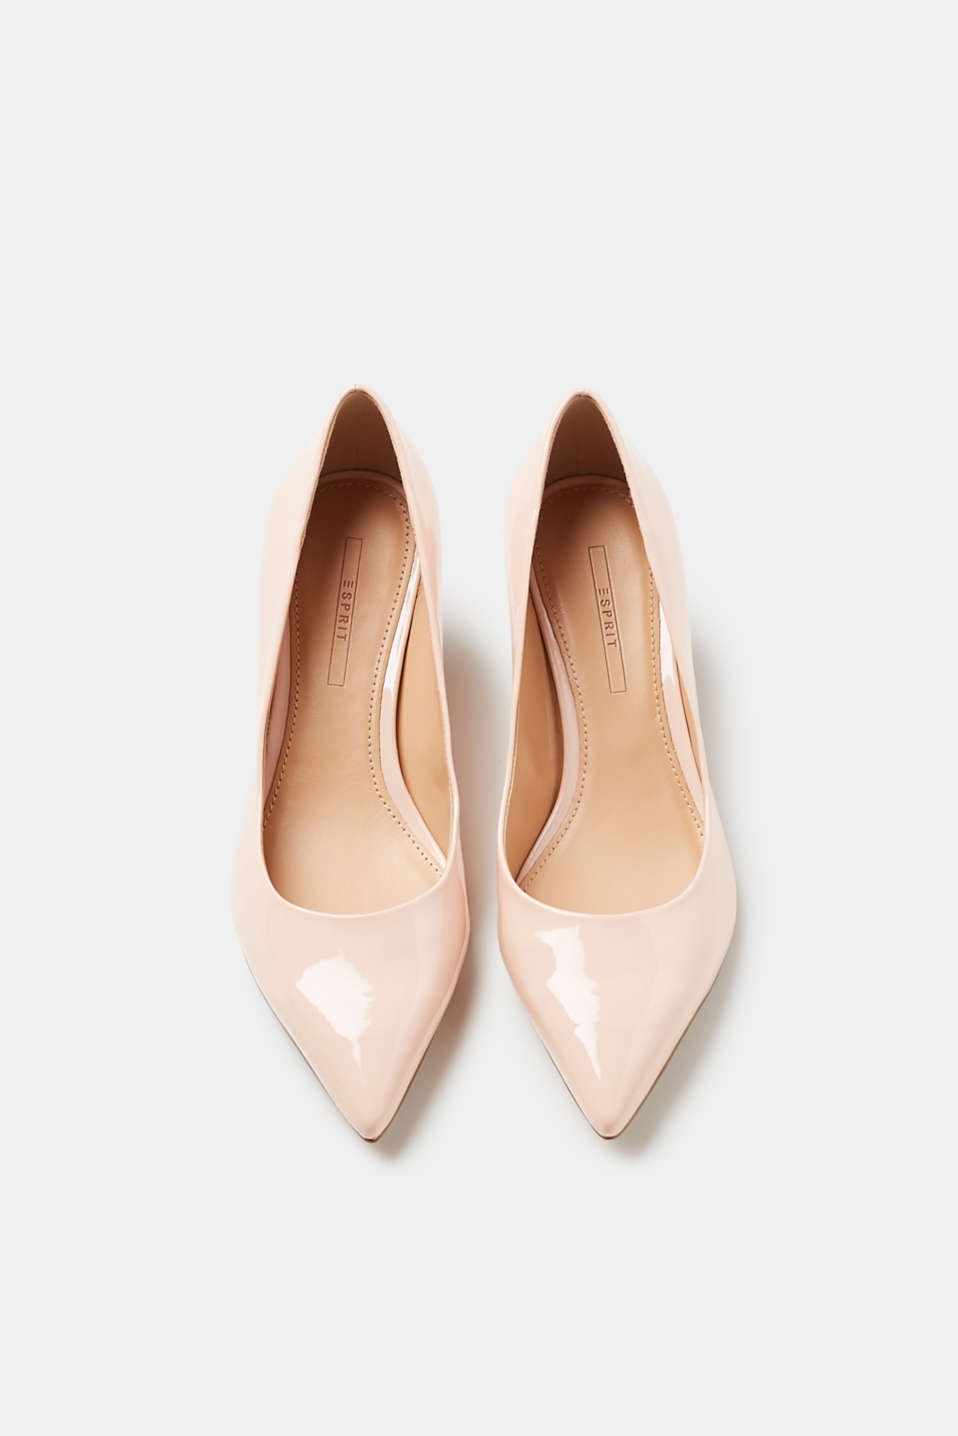 Pointed court shoes + elegant patent finish